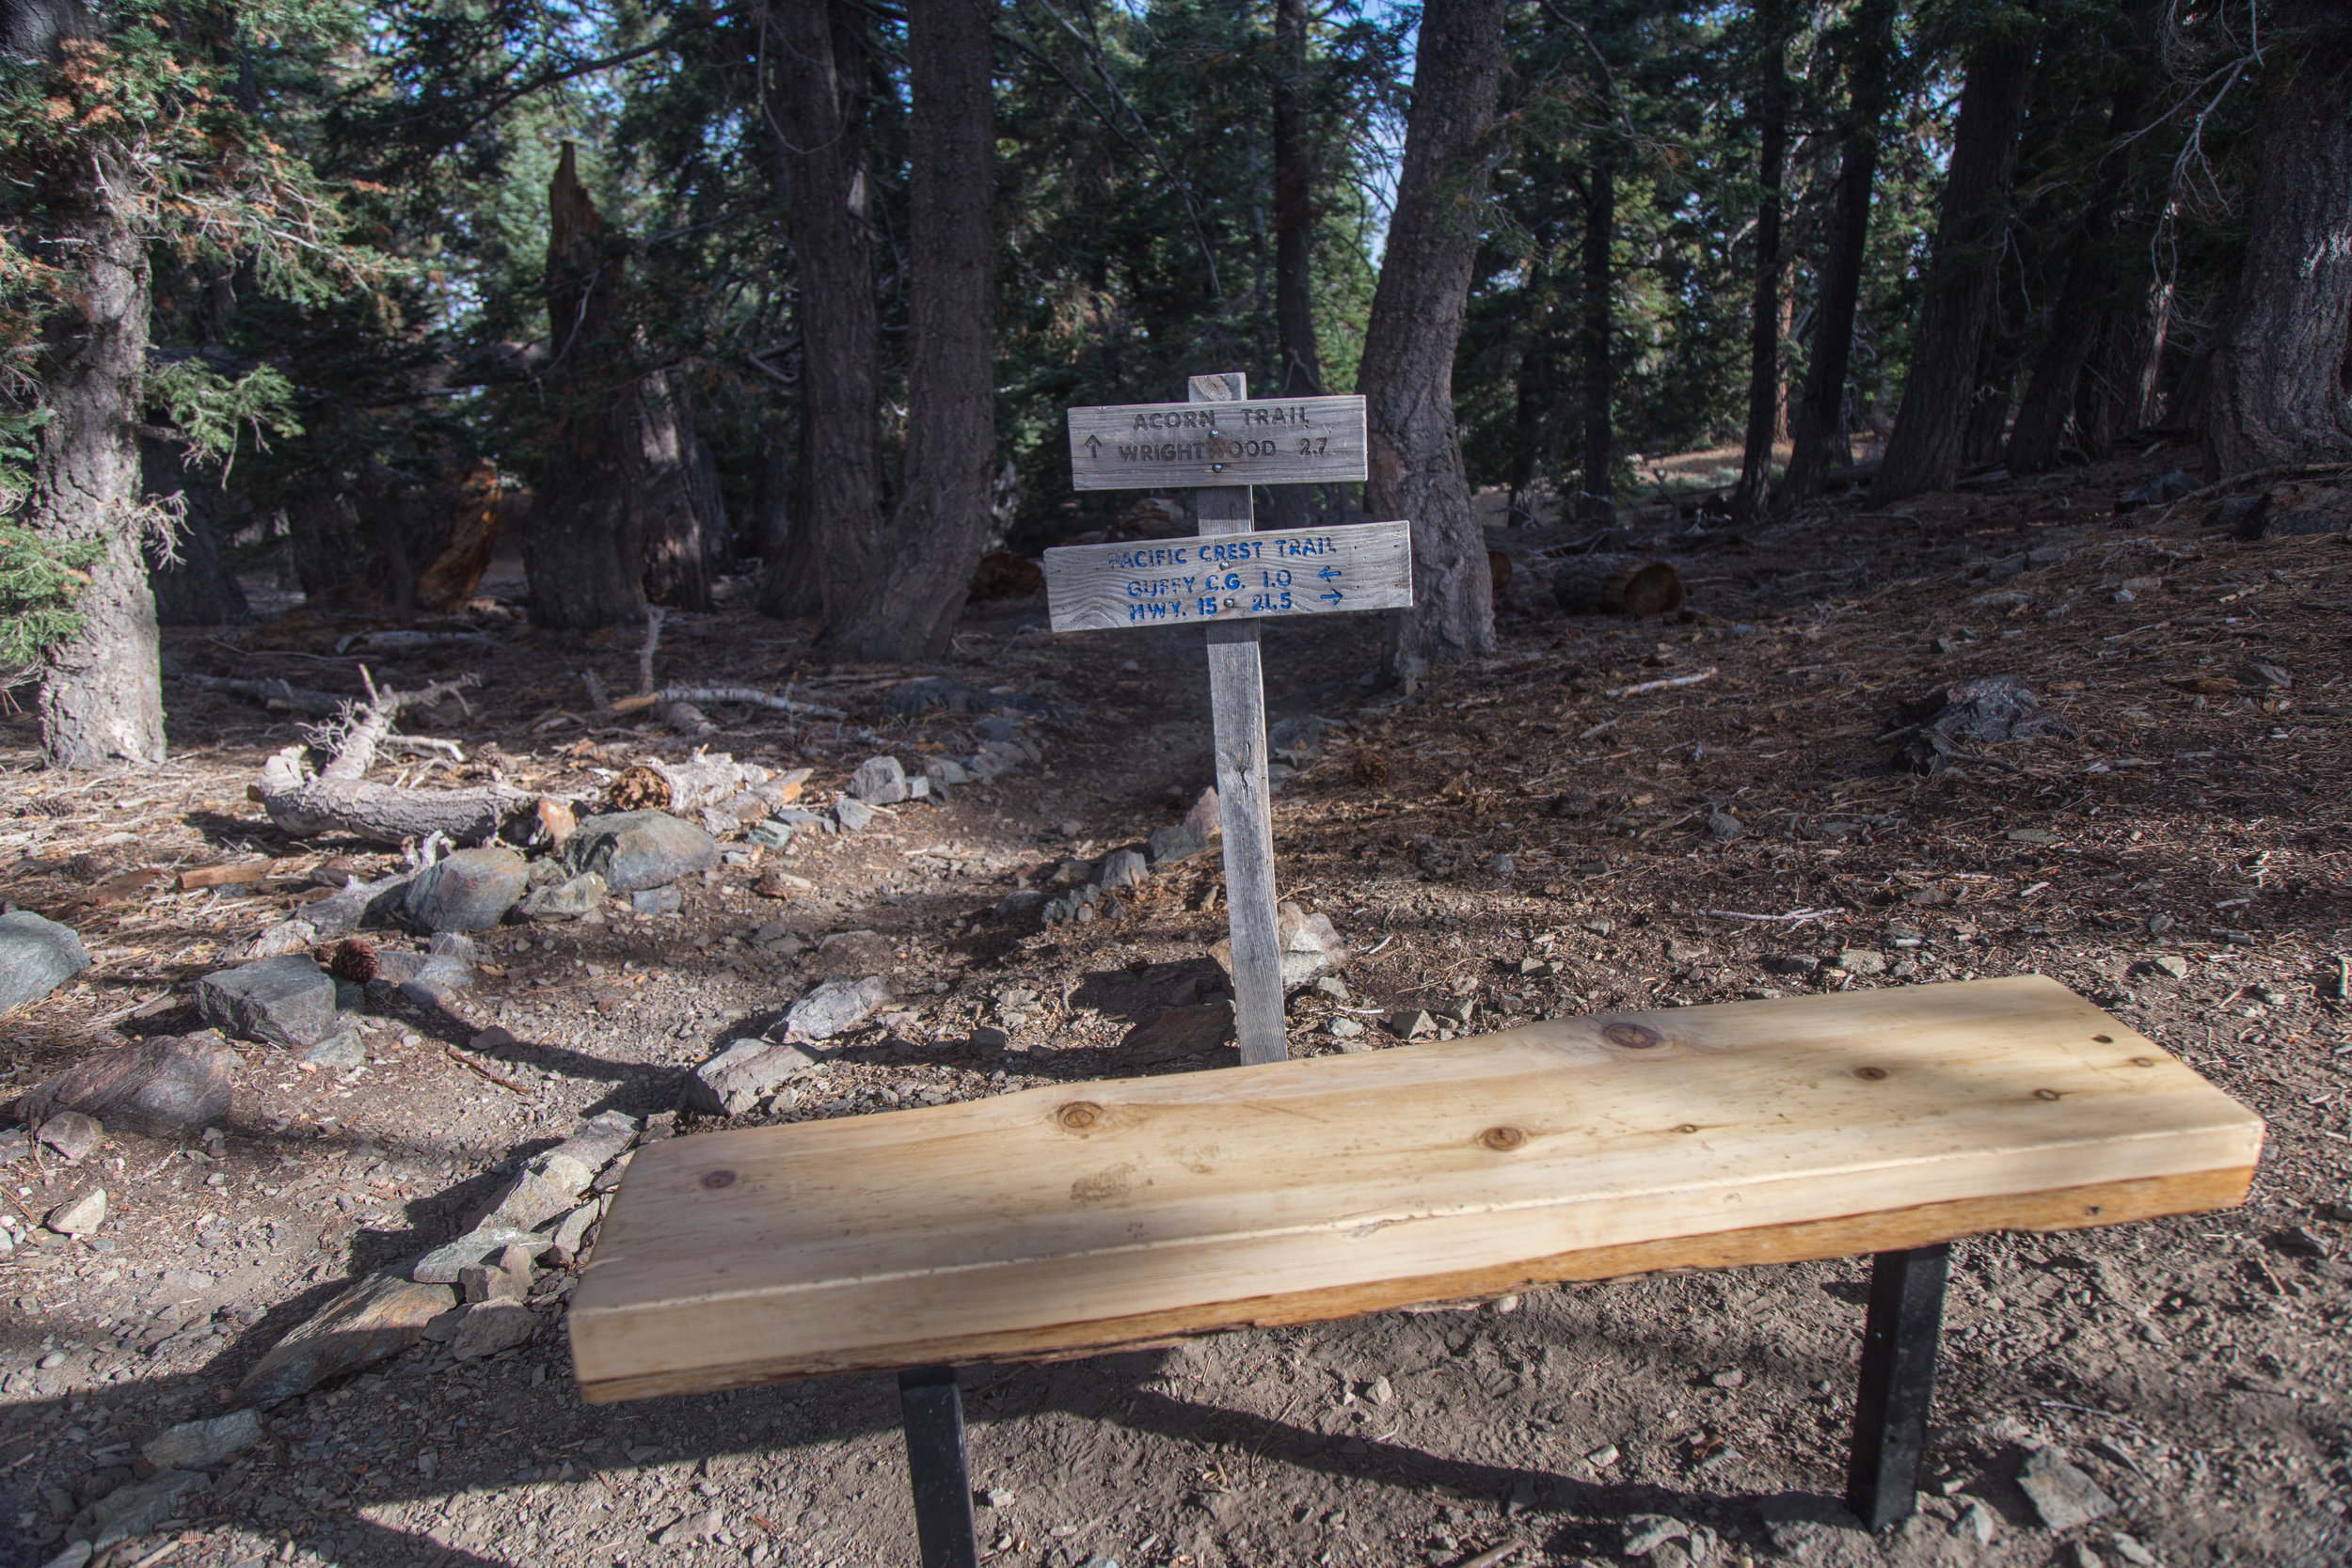 Looking back the way we came, there's a bench and a sign marking the Pacific Crest Trail.  We headed east to find the trail to the summit of Wright Mountain.